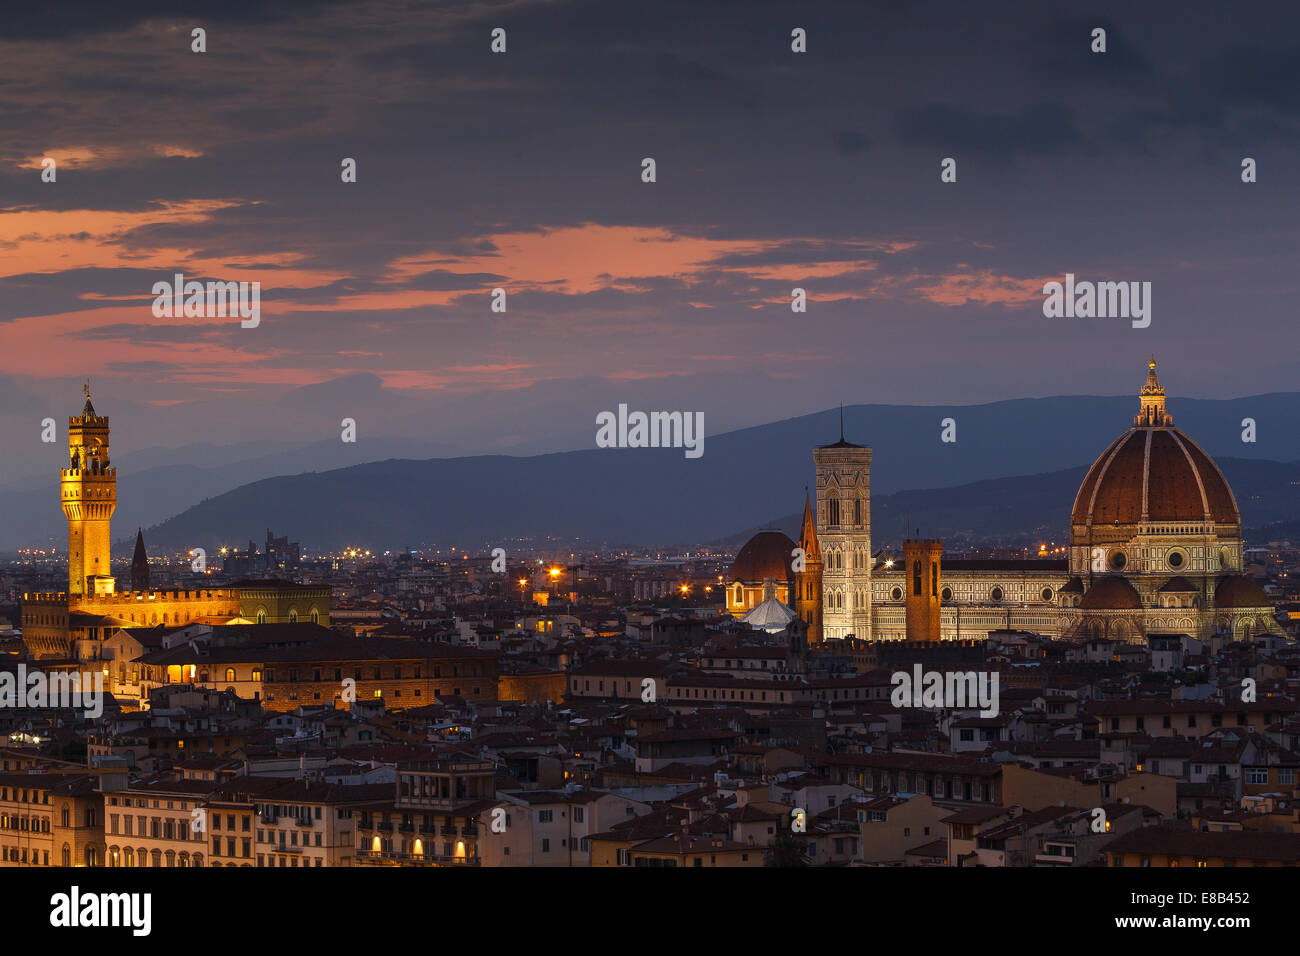 Santa María del Fiore Cathedral and Palazzo Vecchio (Old Palace) at night from Piazzale Michelangelo, Florence, - Stock Image